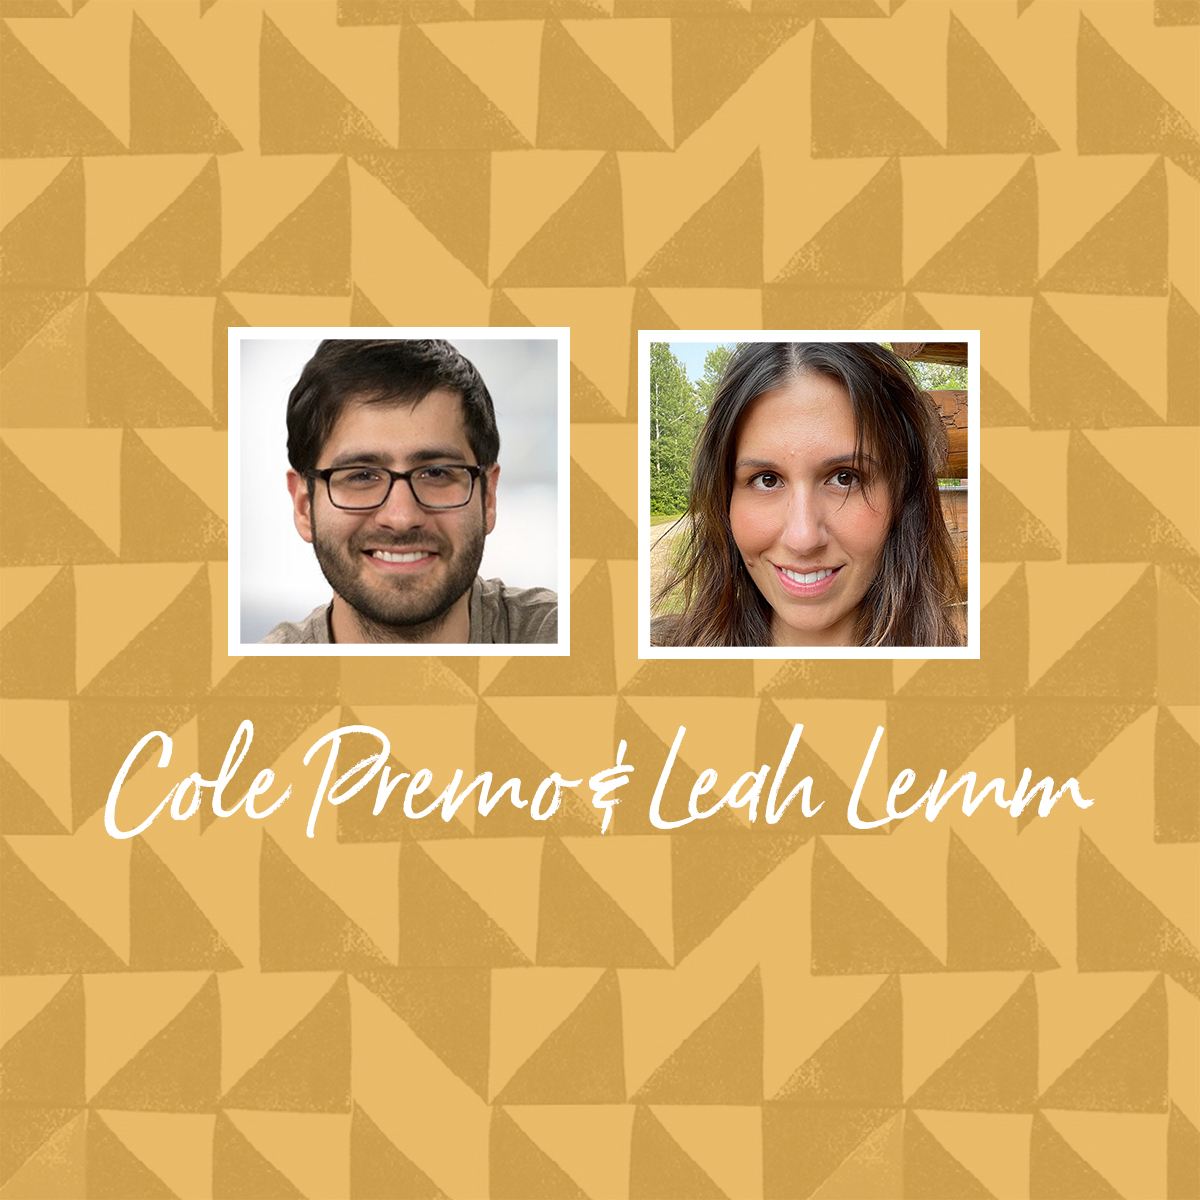 Leah and Cole: Sharing Our Gifts and Purpose